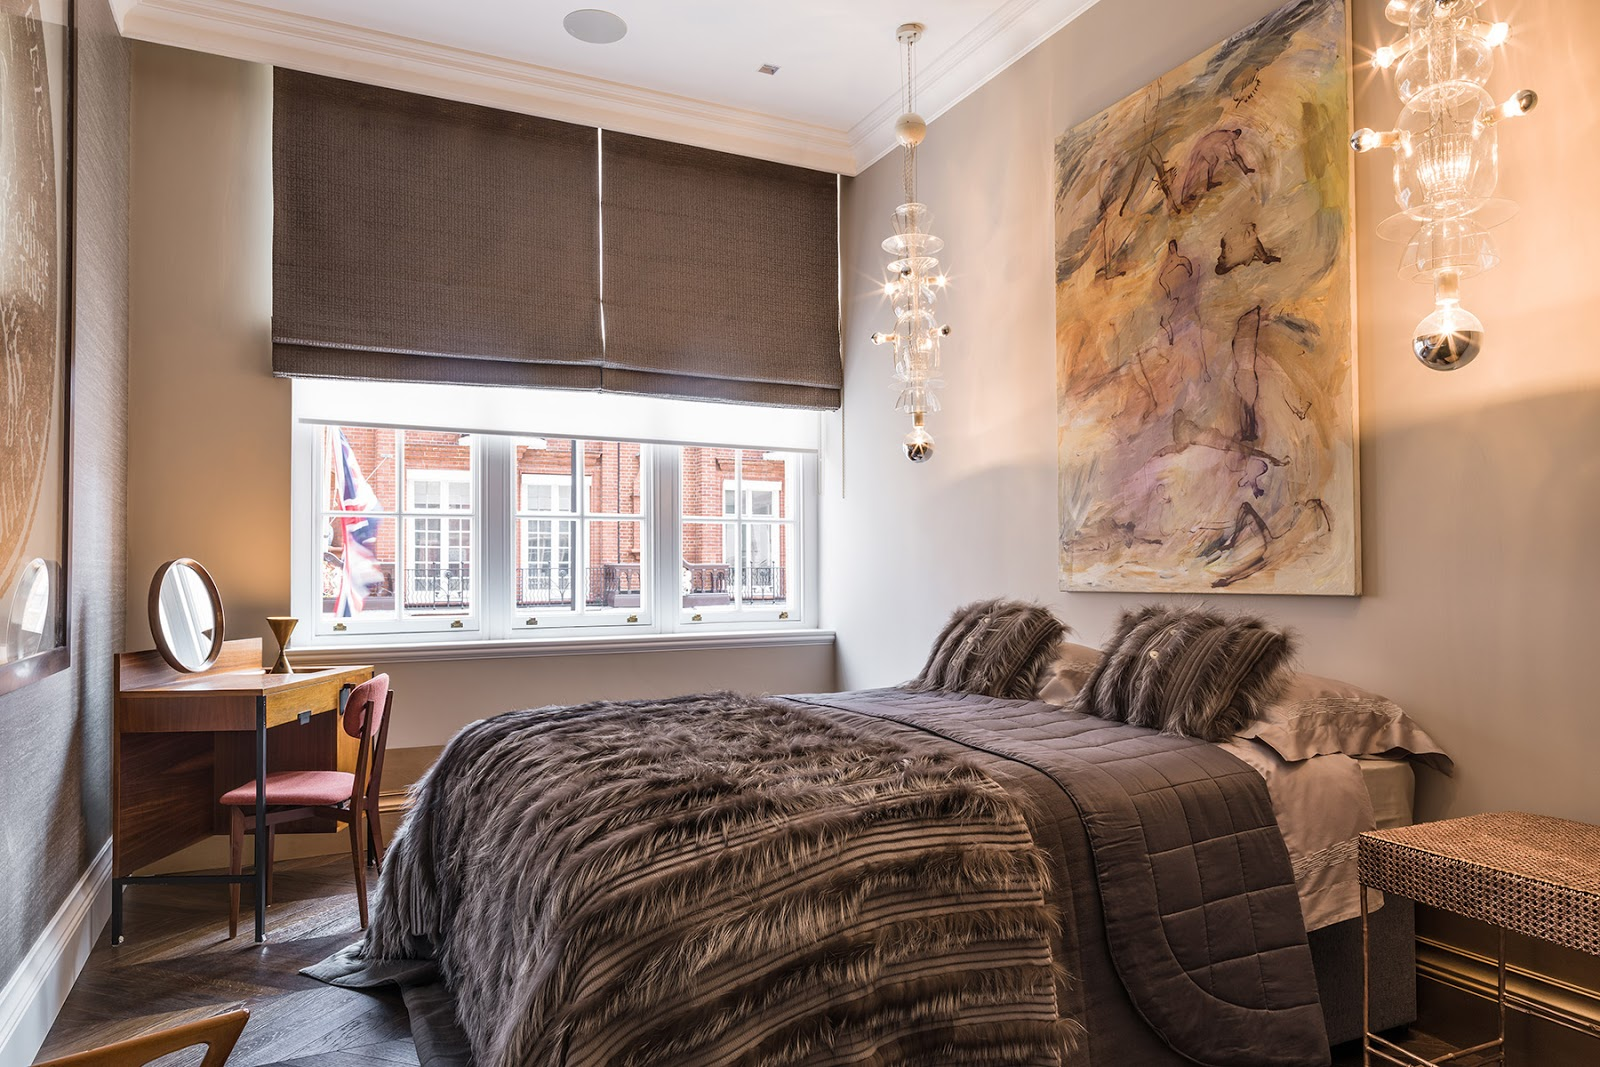 bedroom with wood decor and mid century modern influence inside of the luxurious London apartment